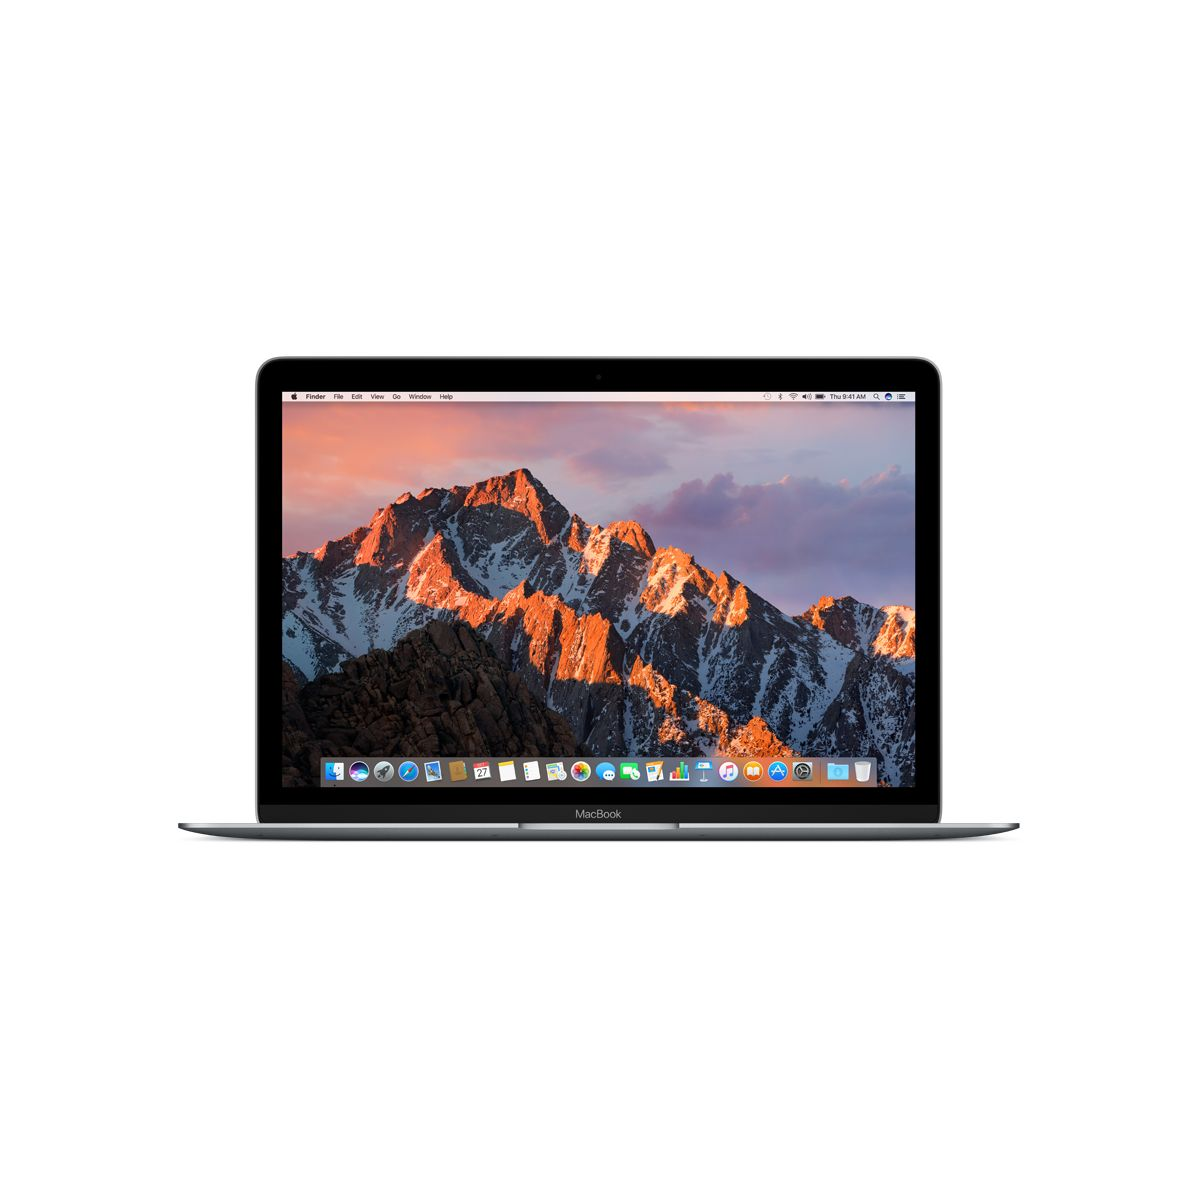 Ordinateur Apple MACBOOK 12p 512Go Gris Sid. i5 1.3GHZ